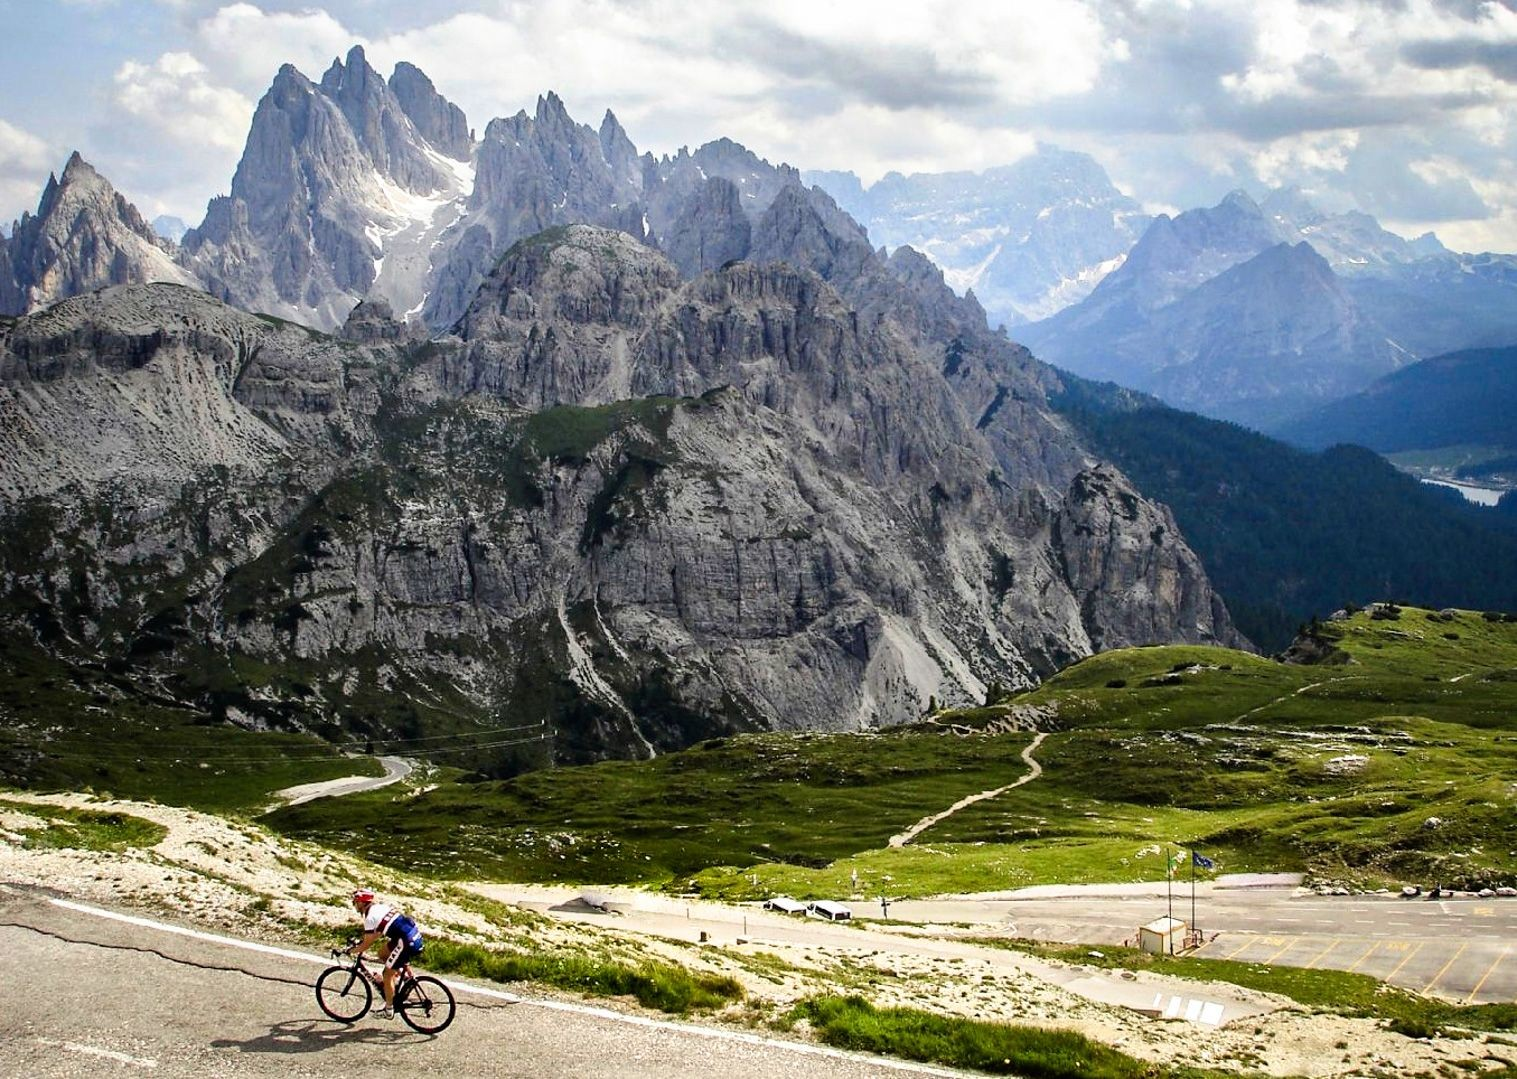 incredible-mountain-climbs-scenery-on-road-bike.jpg - Italy - Italian Dolomites - Guided Road Cycling Holiday - Road Cycling